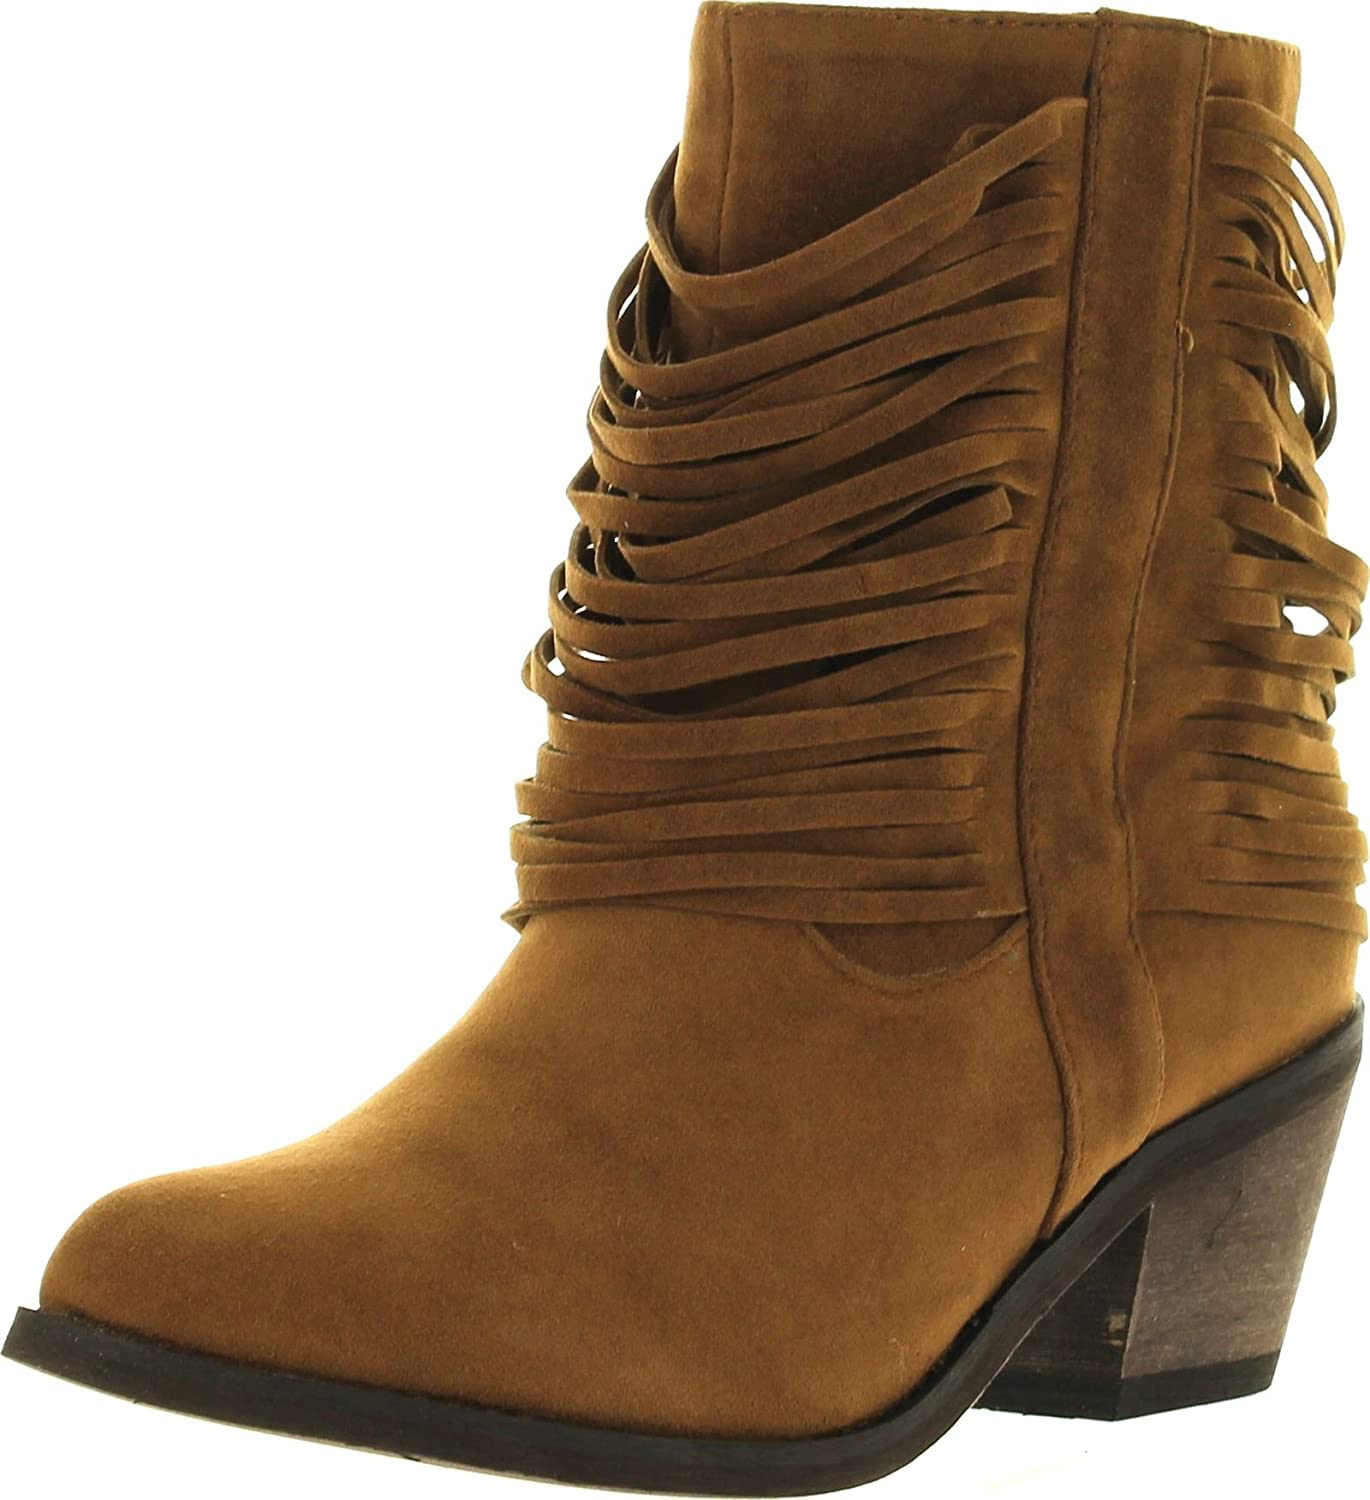 Lolli Couture Westwood FAUX SUEDE SHREDDED FRINGE MID ANKLE COW BOY BOOTS shoes